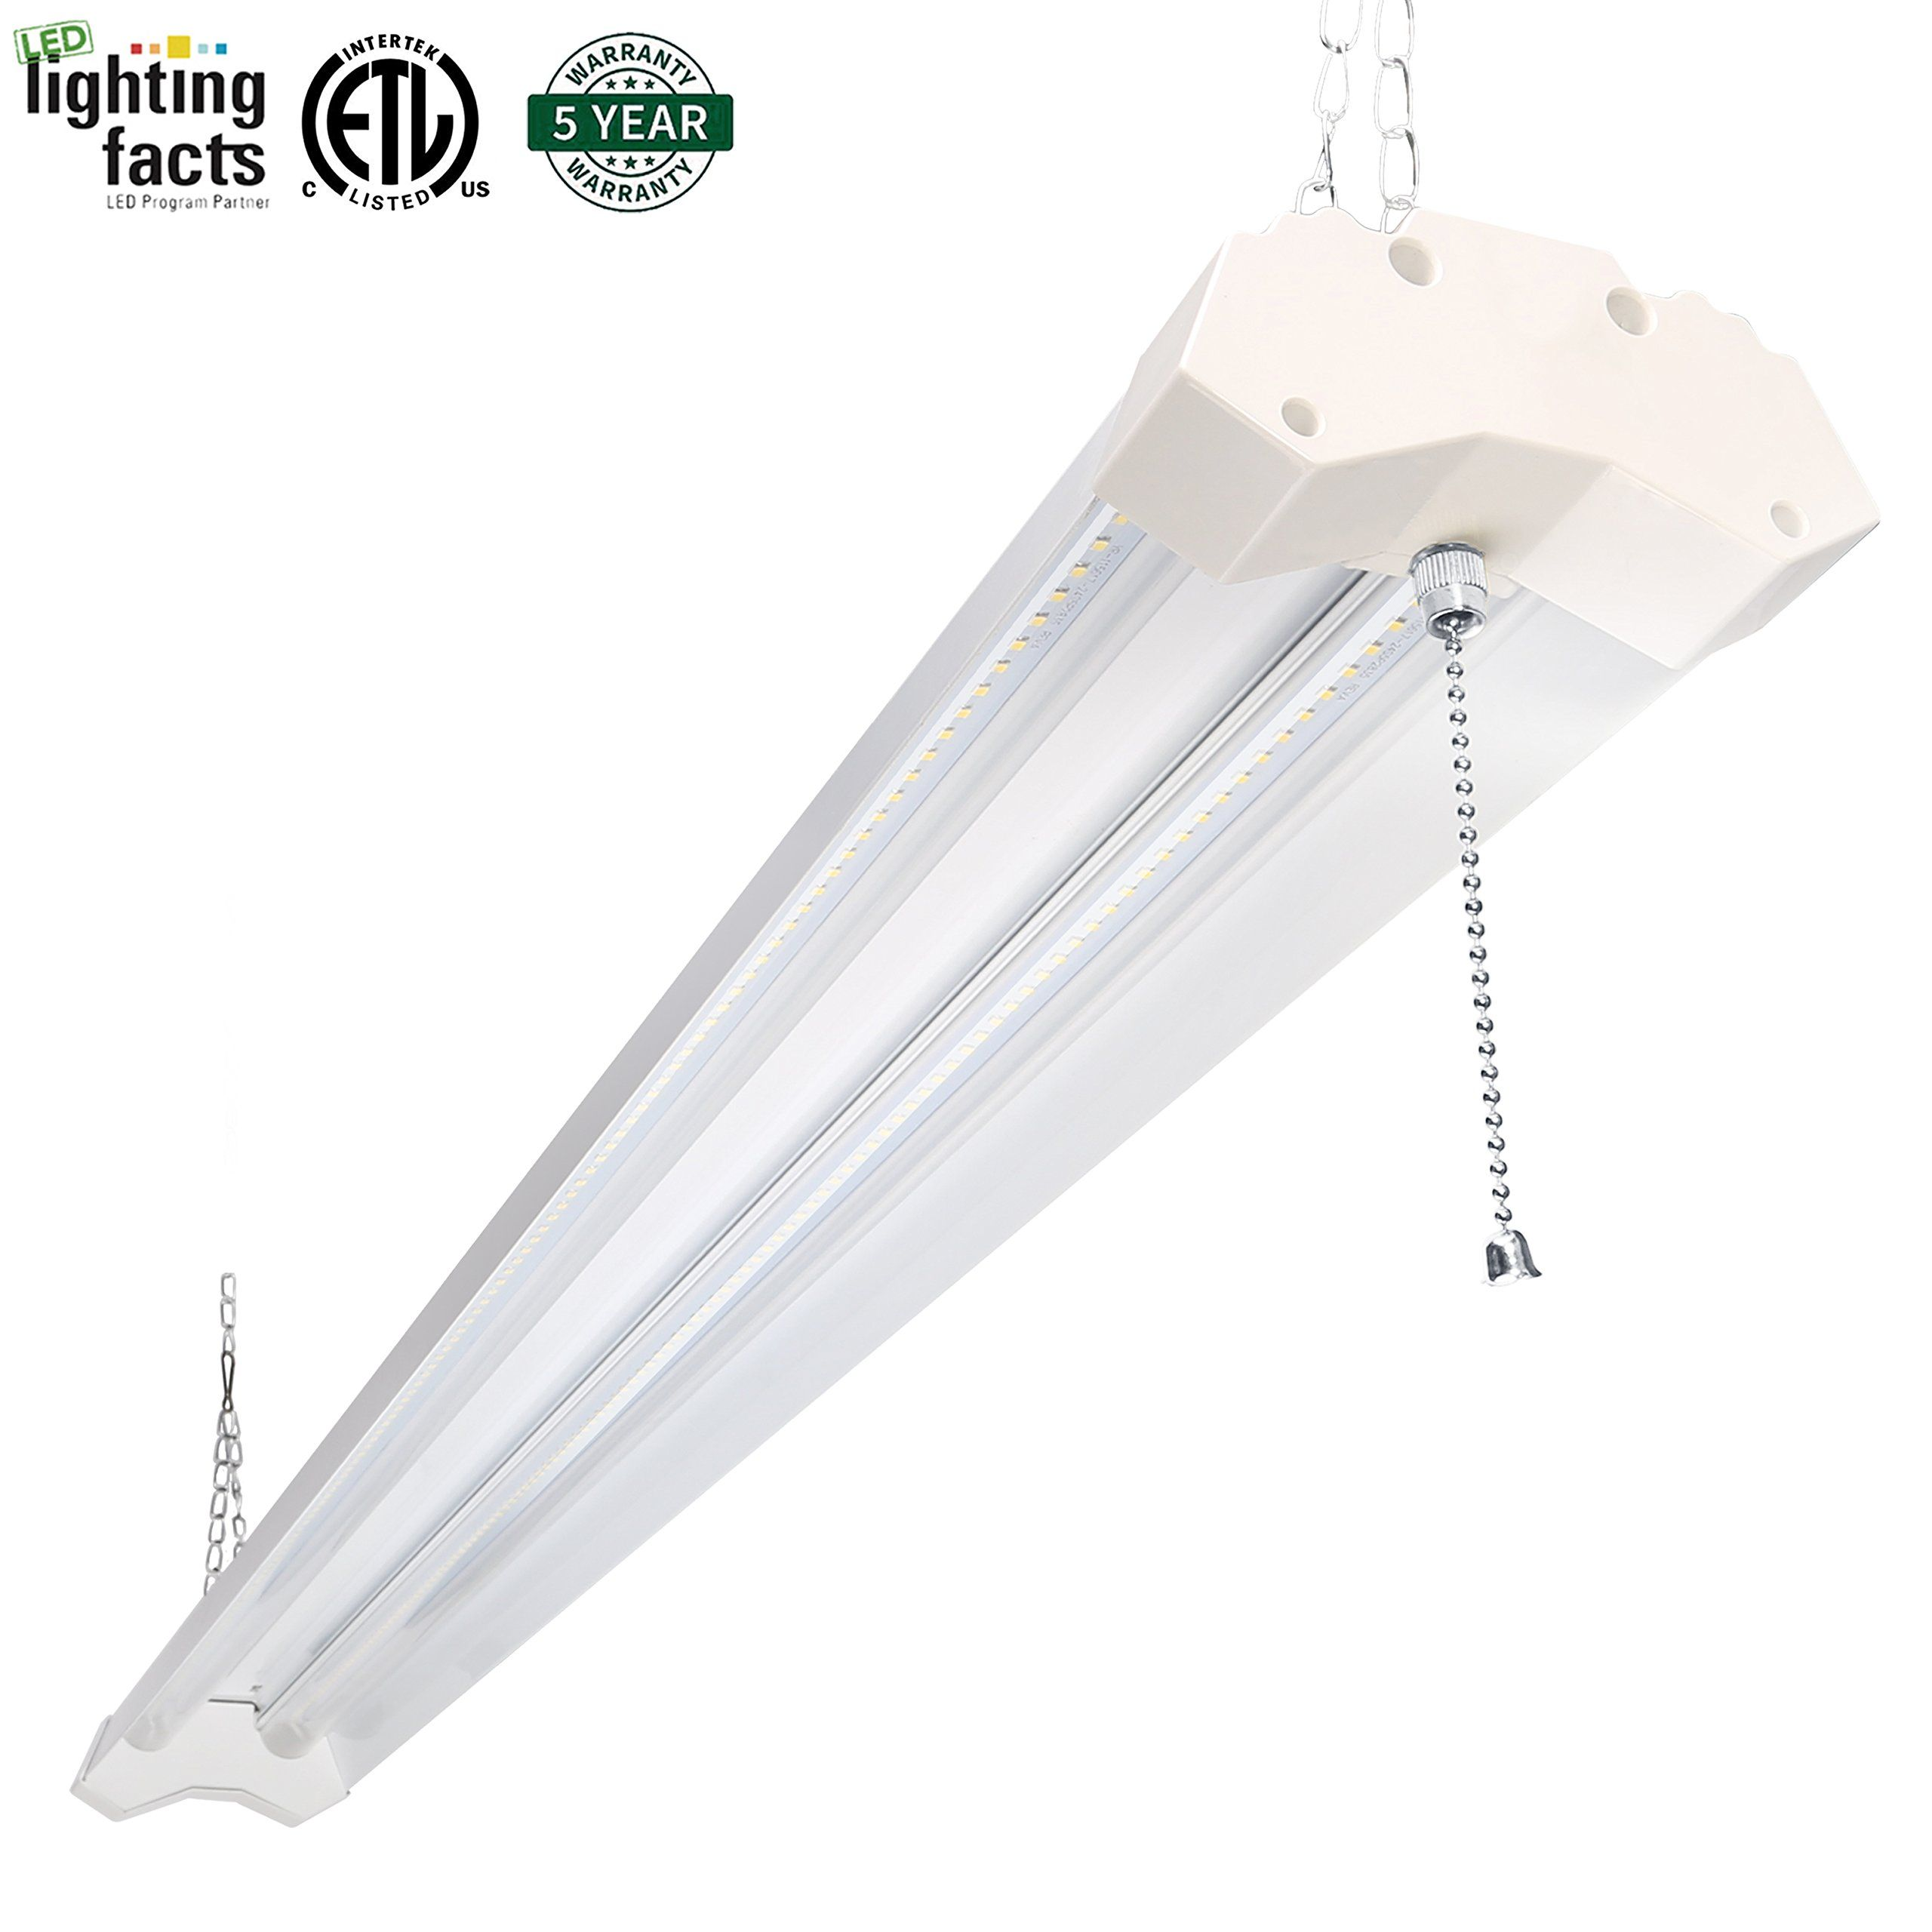 40 Watt In Lumen Hykolity Utility Led Shop Light 4ft 40 Watt 4800 Lumen 4000k